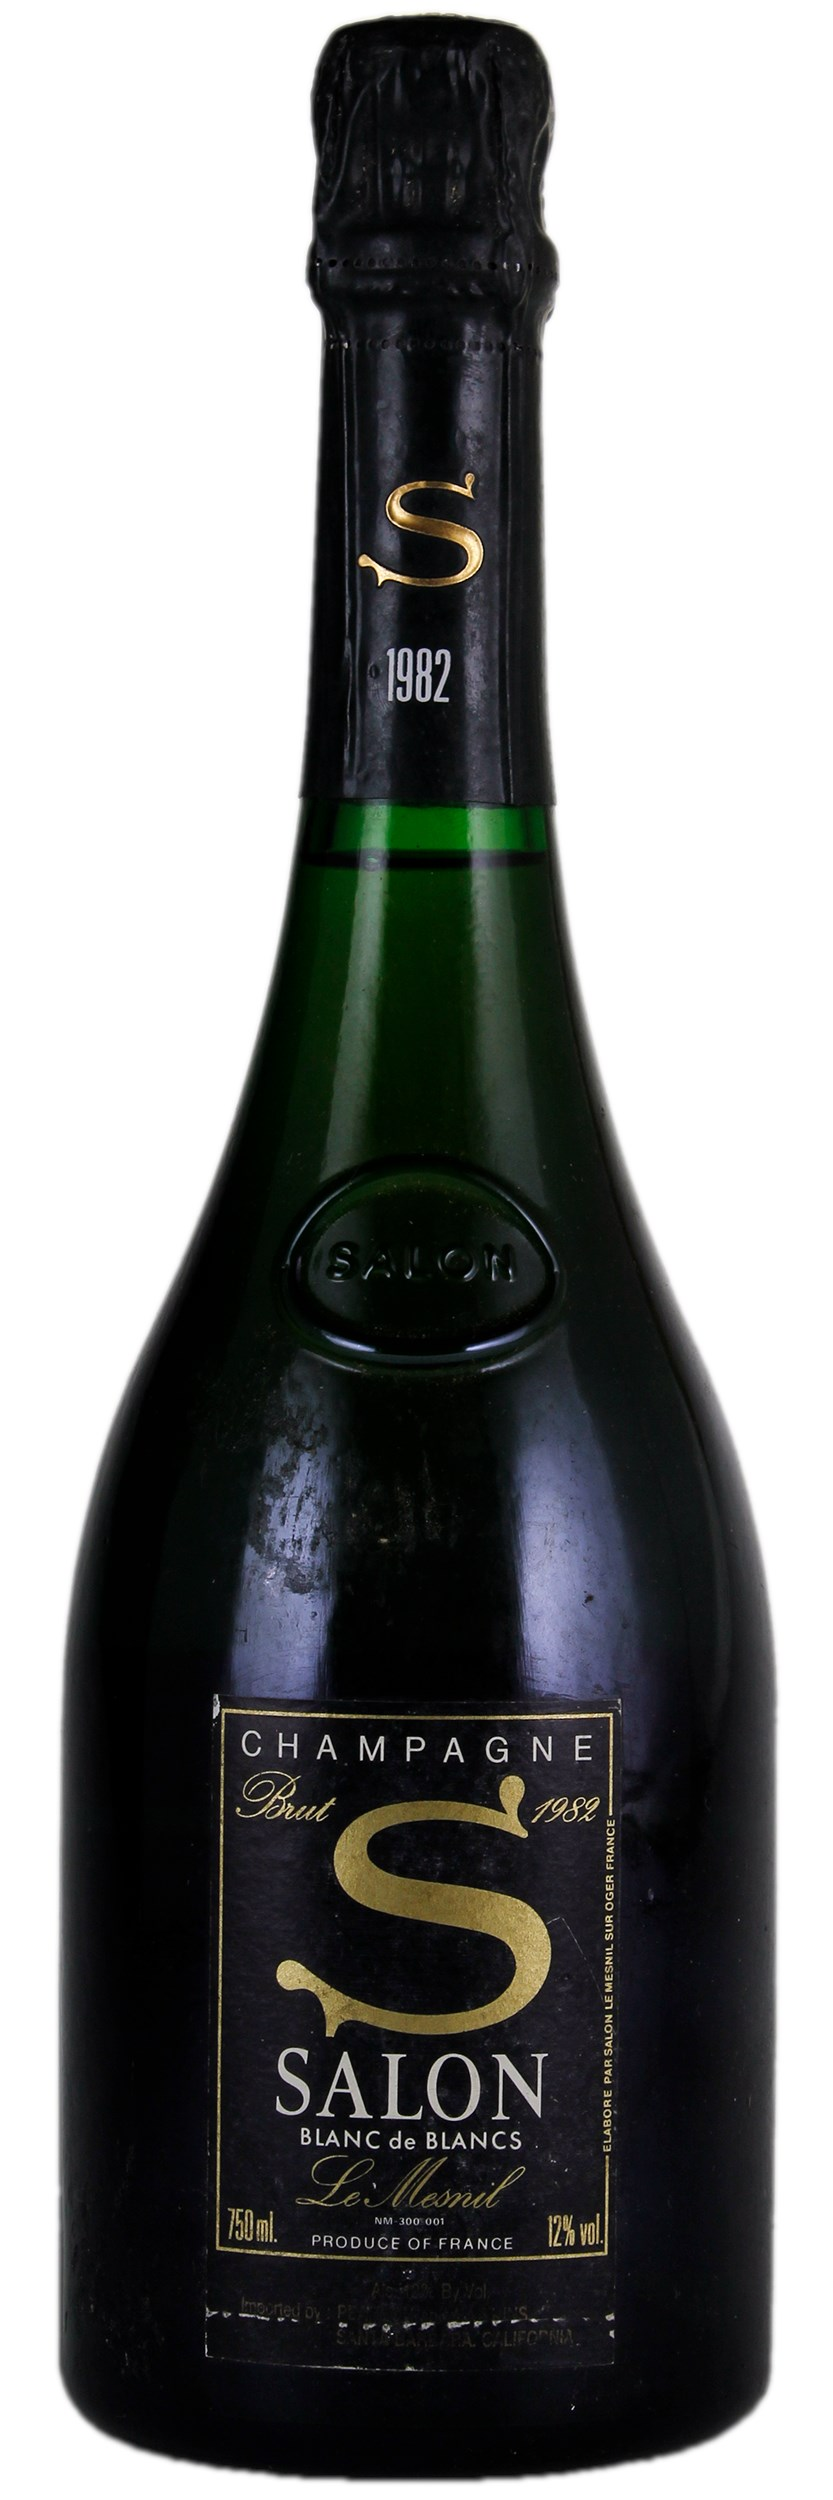 Salon Le Mesnil Blanc de Blancs 1982, Sparkling from France - WineBid